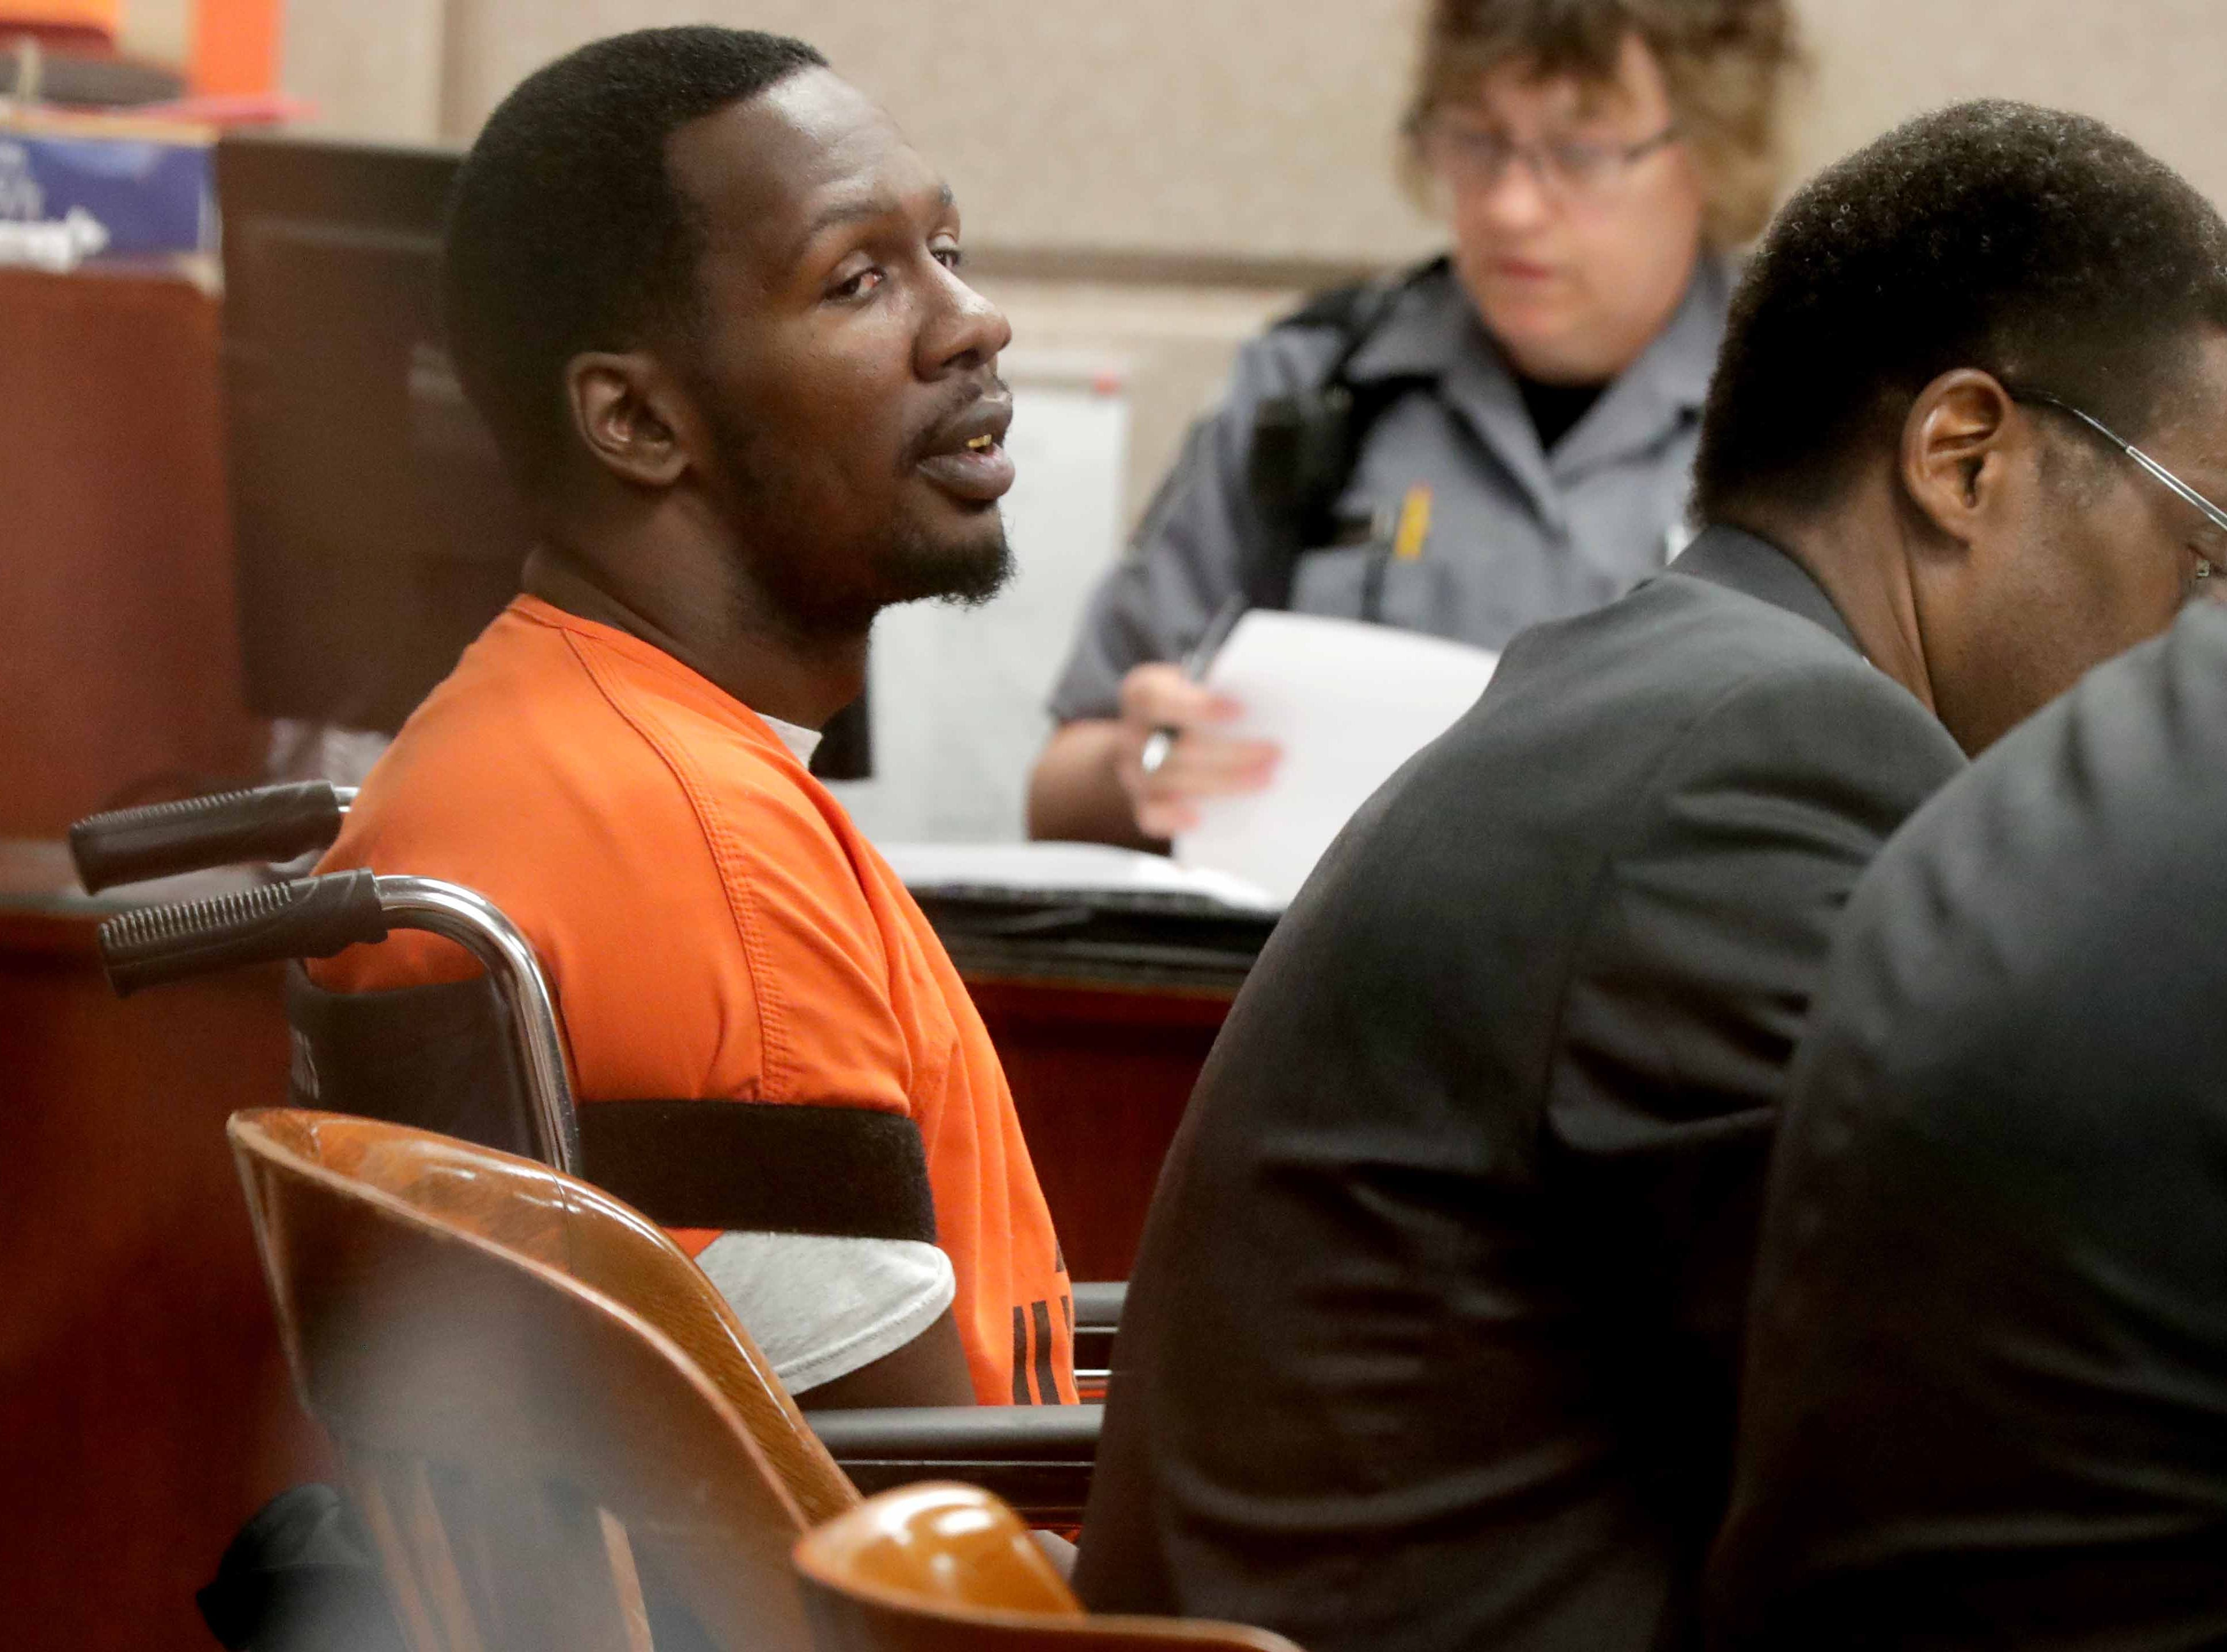 Jonathan Copeland Jr., 30, who is charged in the fatal shooting of Milwaukee Police Officer Michael Michalski, appears in Milwaukee County Court on Thursday.